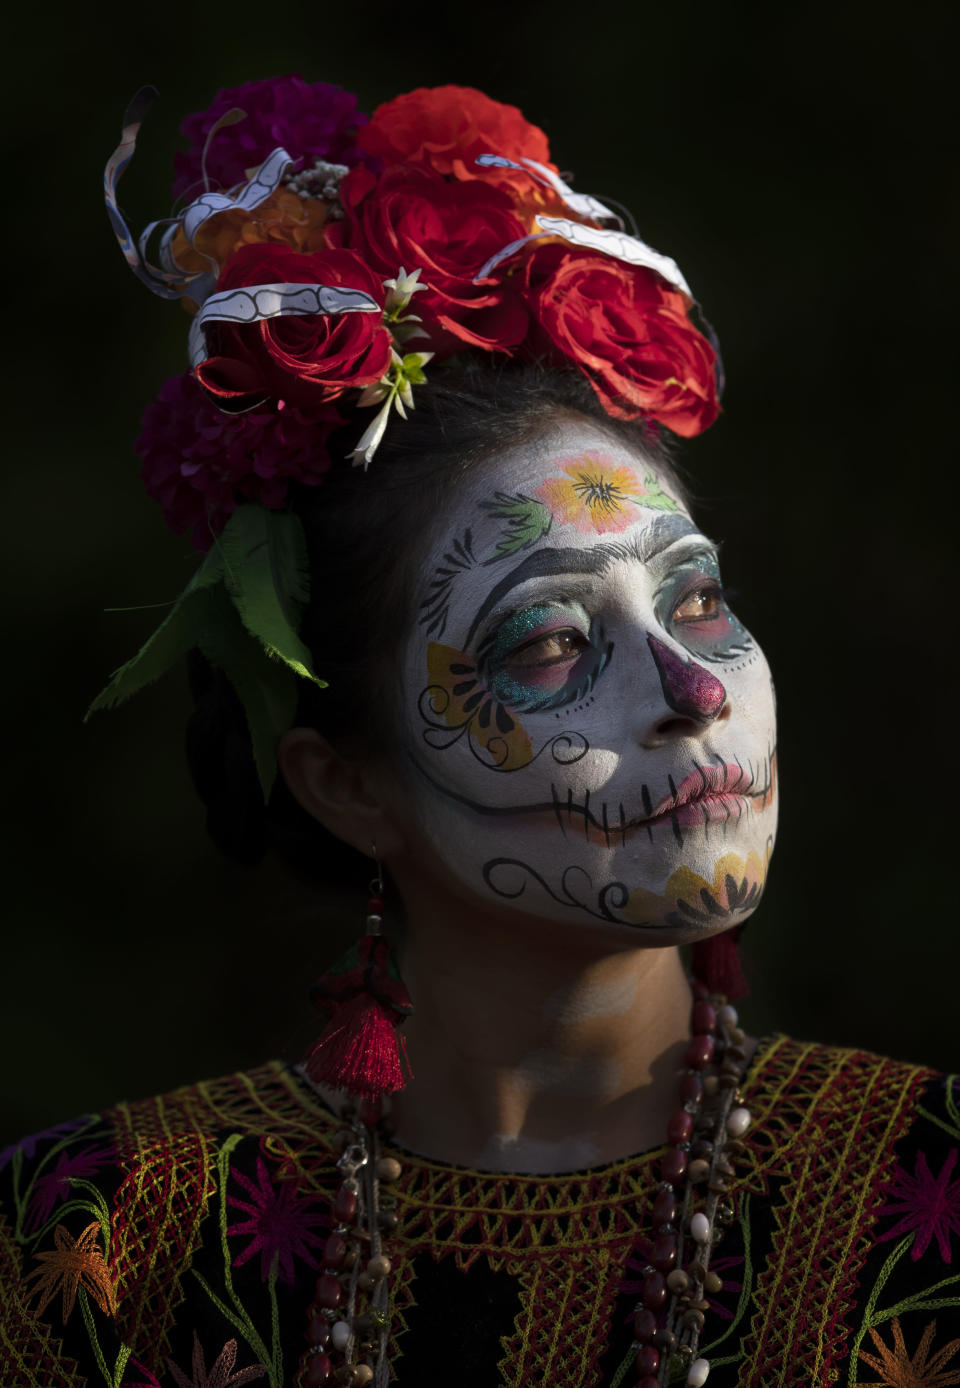 "Gabriela Ruiz is dressed as a ""Catrina"" to perform in a play promoting the upcoming Day of the Dead holiday, at the Nativita pier in the Xochimilco borough of Mexico City, Friday, Oct. 23, 2020. The iconic figures of skeletons with elegant wide-brimmed hats better known as Catrinas were created as satirical prints by Mexican artist Jose Guadalupe Posada sometime between 1910 and his death in 1913. (AP Photo/Marco Ugarte)"